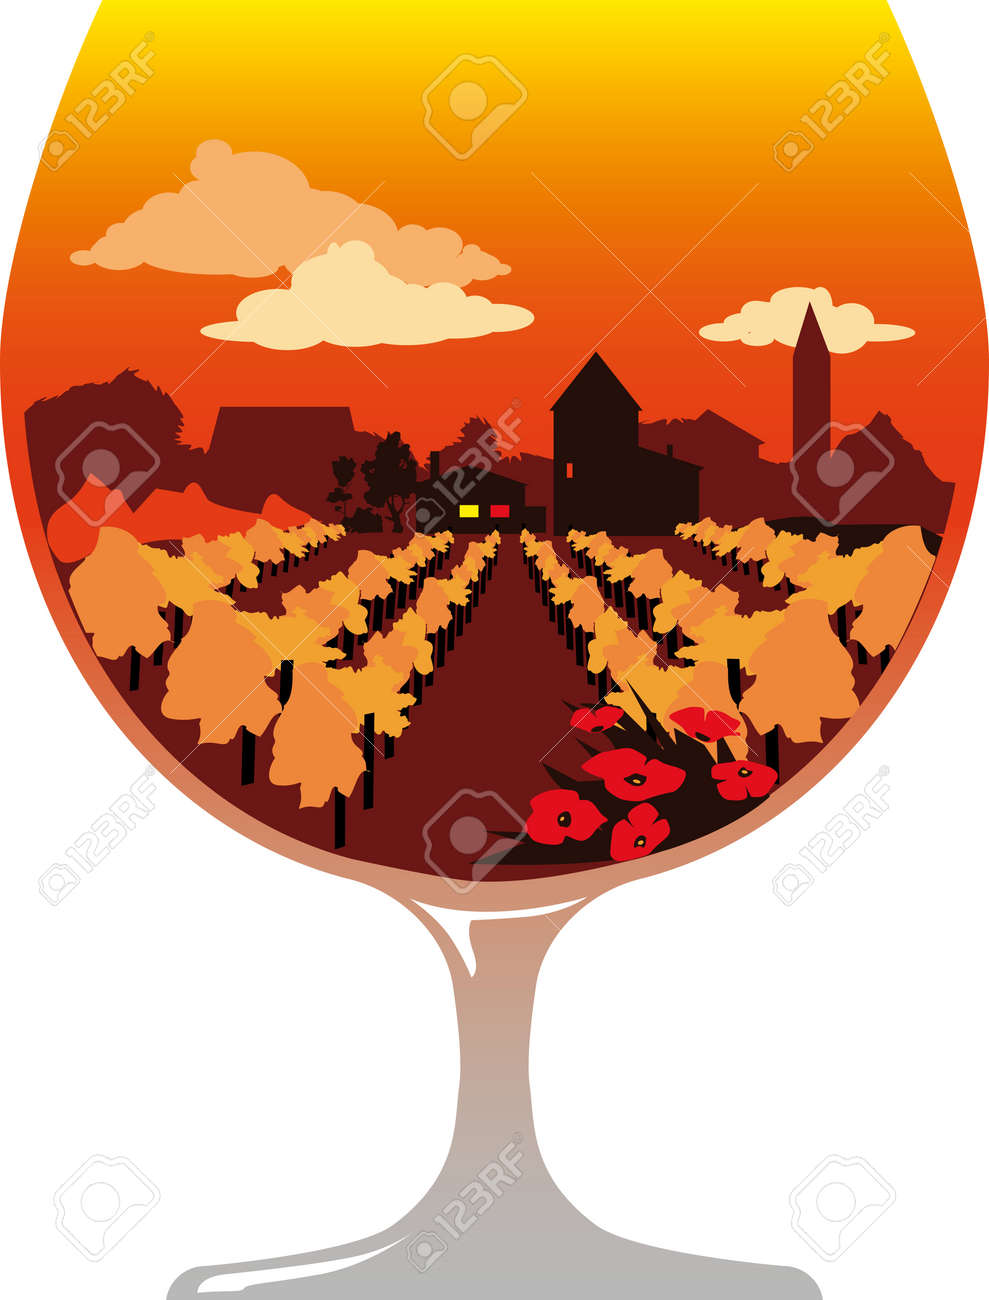 Silhouette of a brandy glass filled with a wine region landscape and a winery or distillery, EPS 8 vector illustration, no transparencies - 170848941